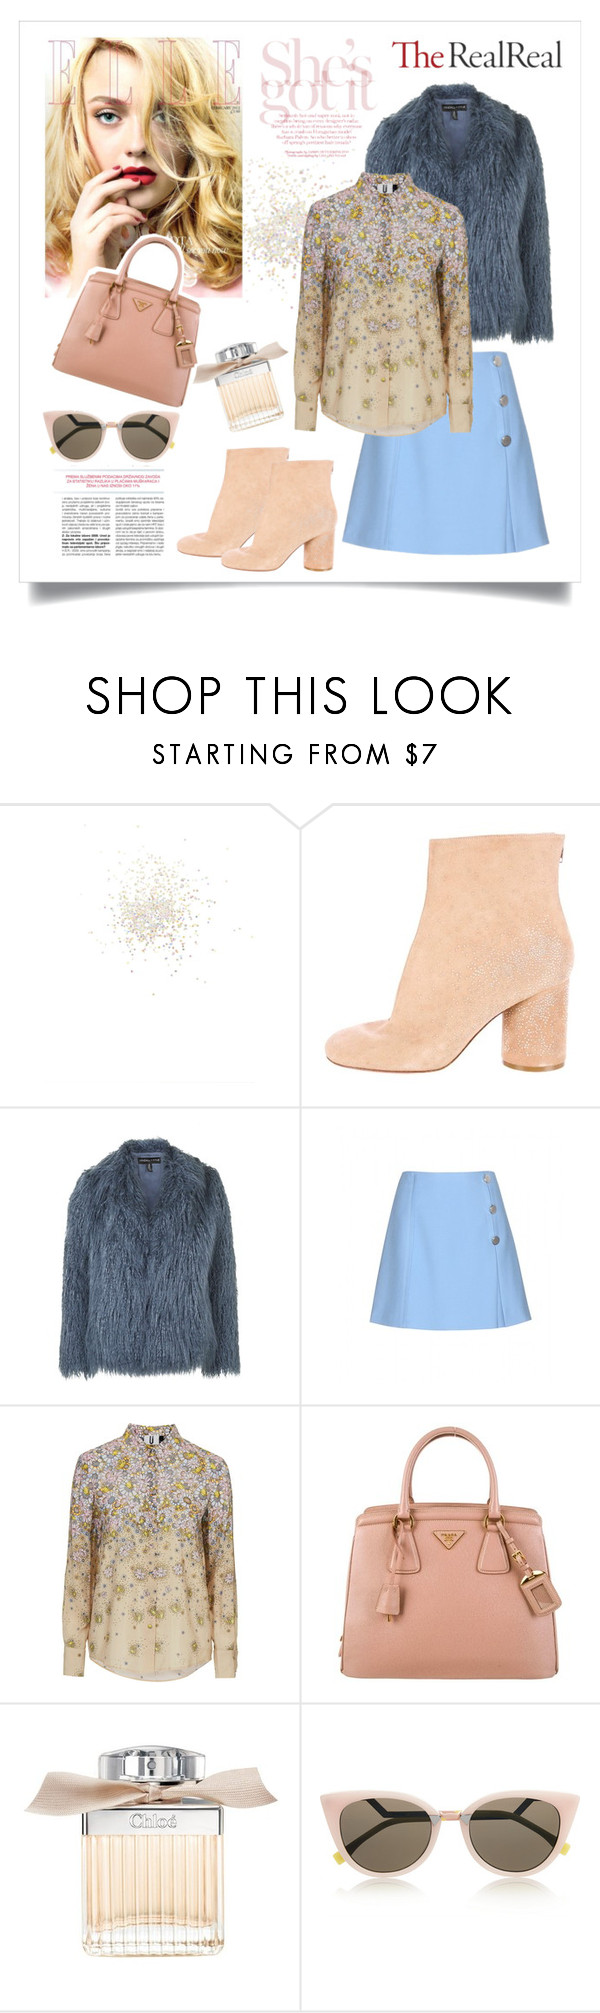 """""""Fall Style With The RealReal: Contest Entry"""" by maris-go-round ❤ liked on Polyvore featuring Topshop, Maison Margiela, Miu Miu, Unique, Prada, Chloé and Fendi"""